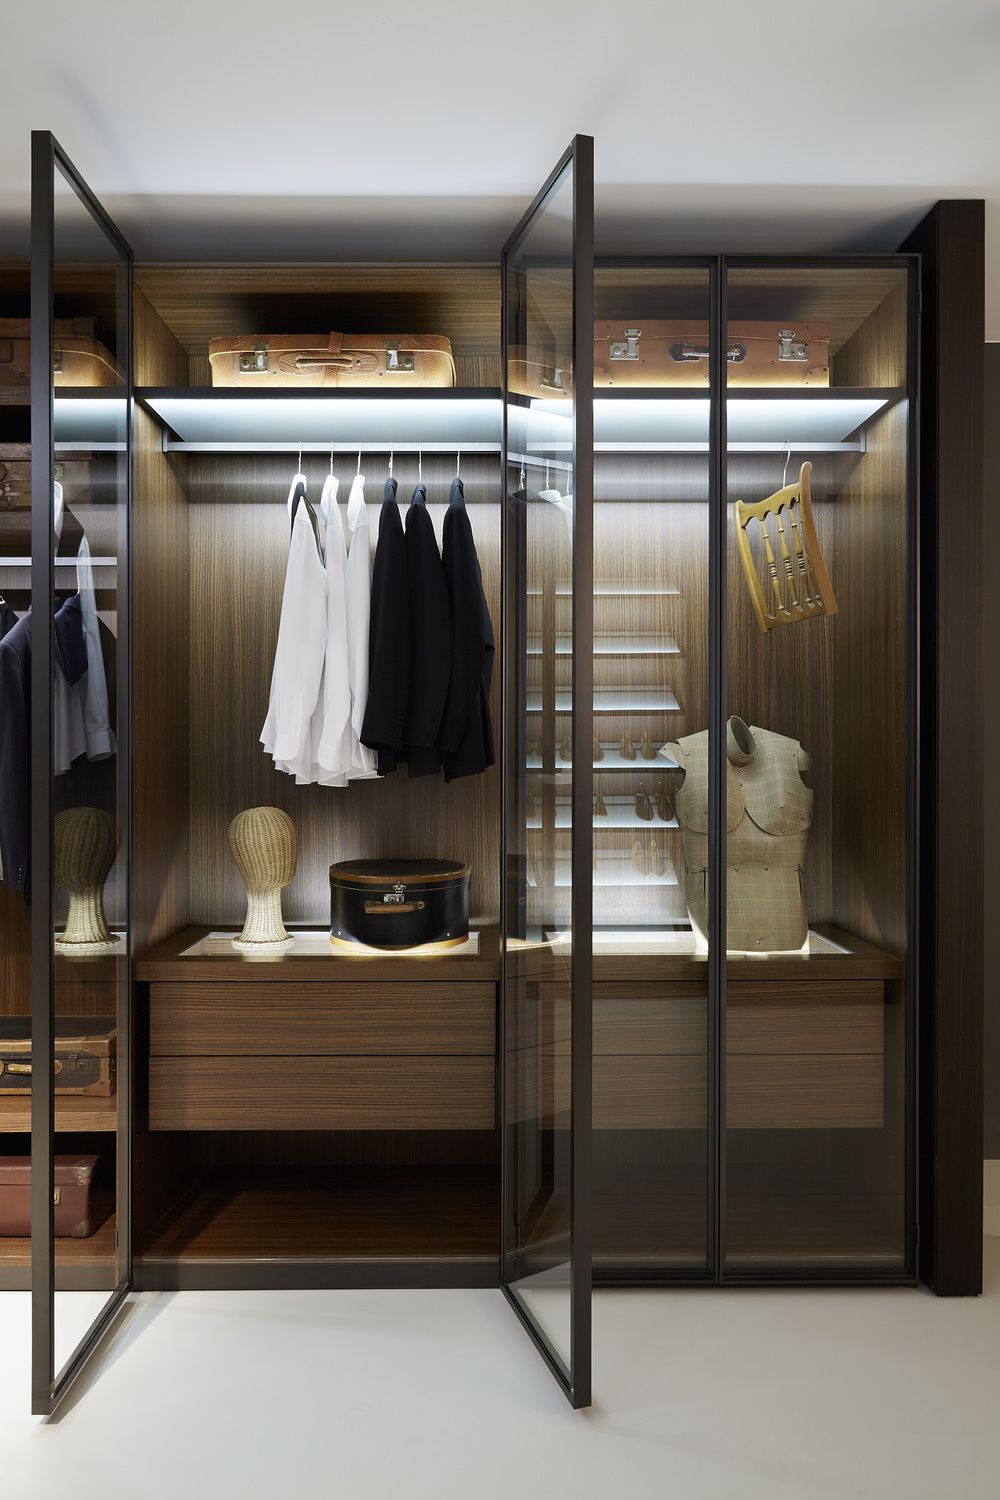 Luxury Bedroom With Dark Brown Painted Oak Free Standing Closet Systems,  And Stylish Glass Door With Dark Brown Metal Frame. Closet Organizer,  Stylish Free ...